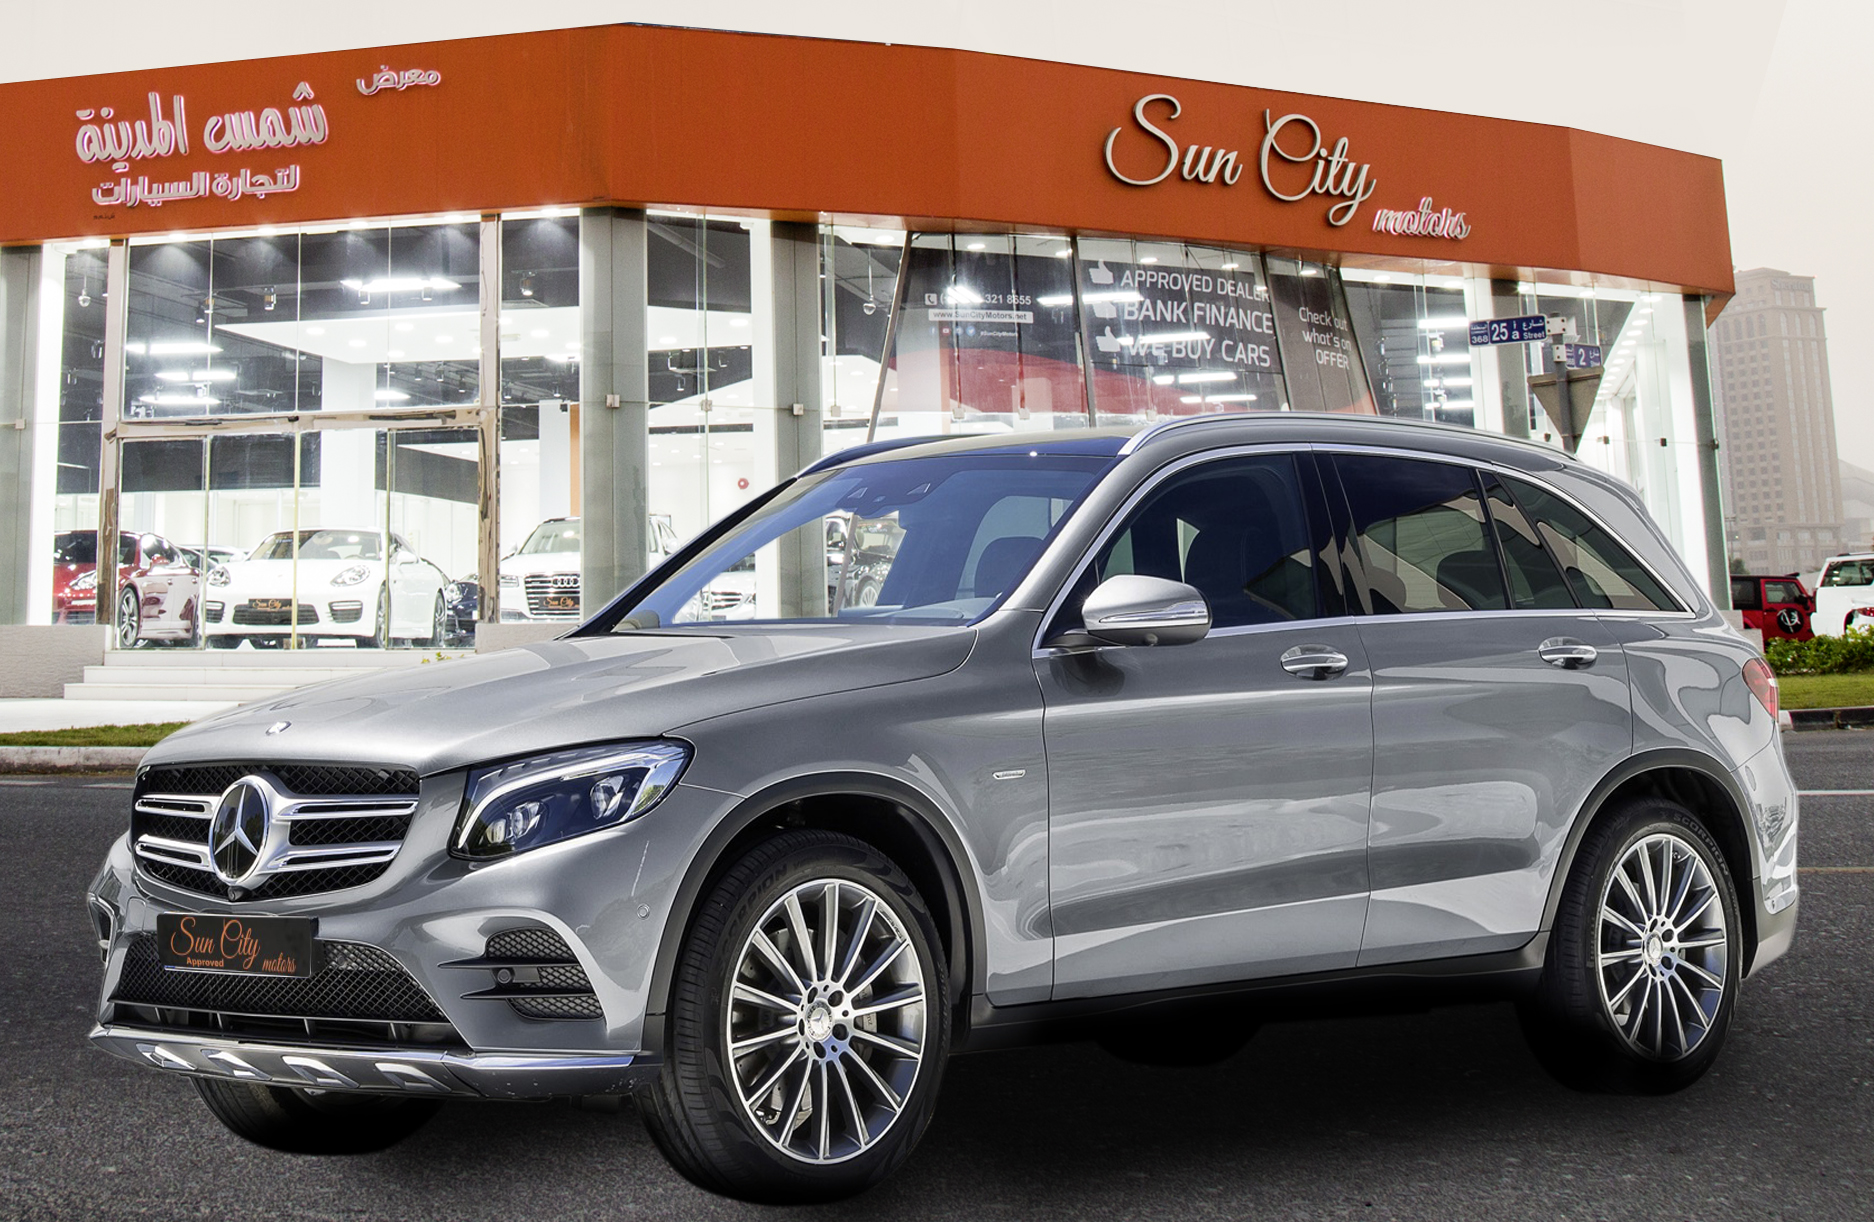 2016 Mercedes Benz Glc Drive Fast With Class Sun City